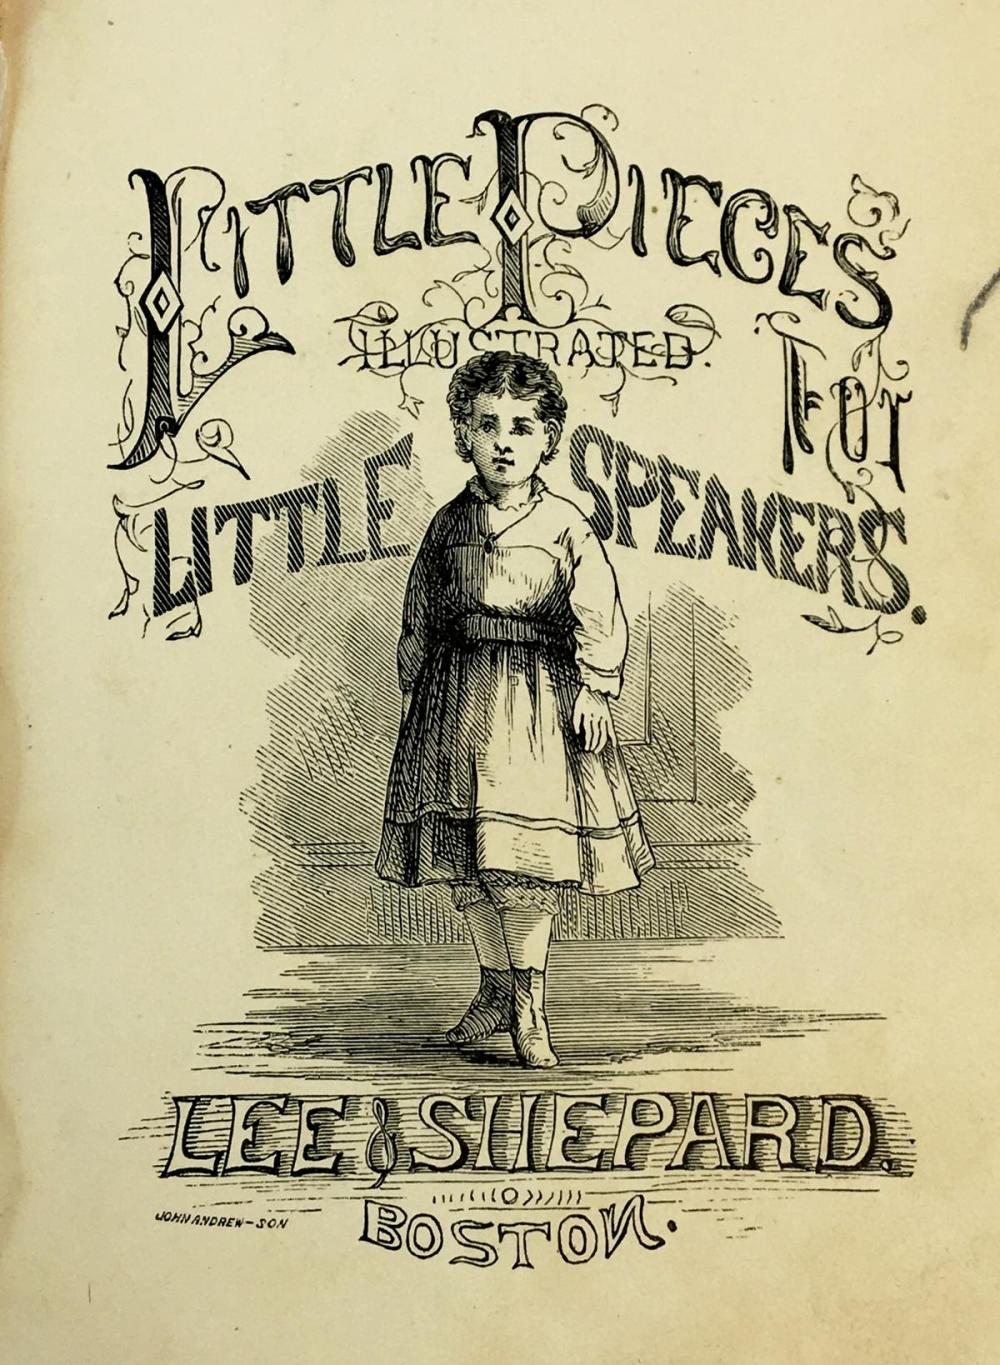 1872 Little Pieces for Little Speakers by S. M. Priest